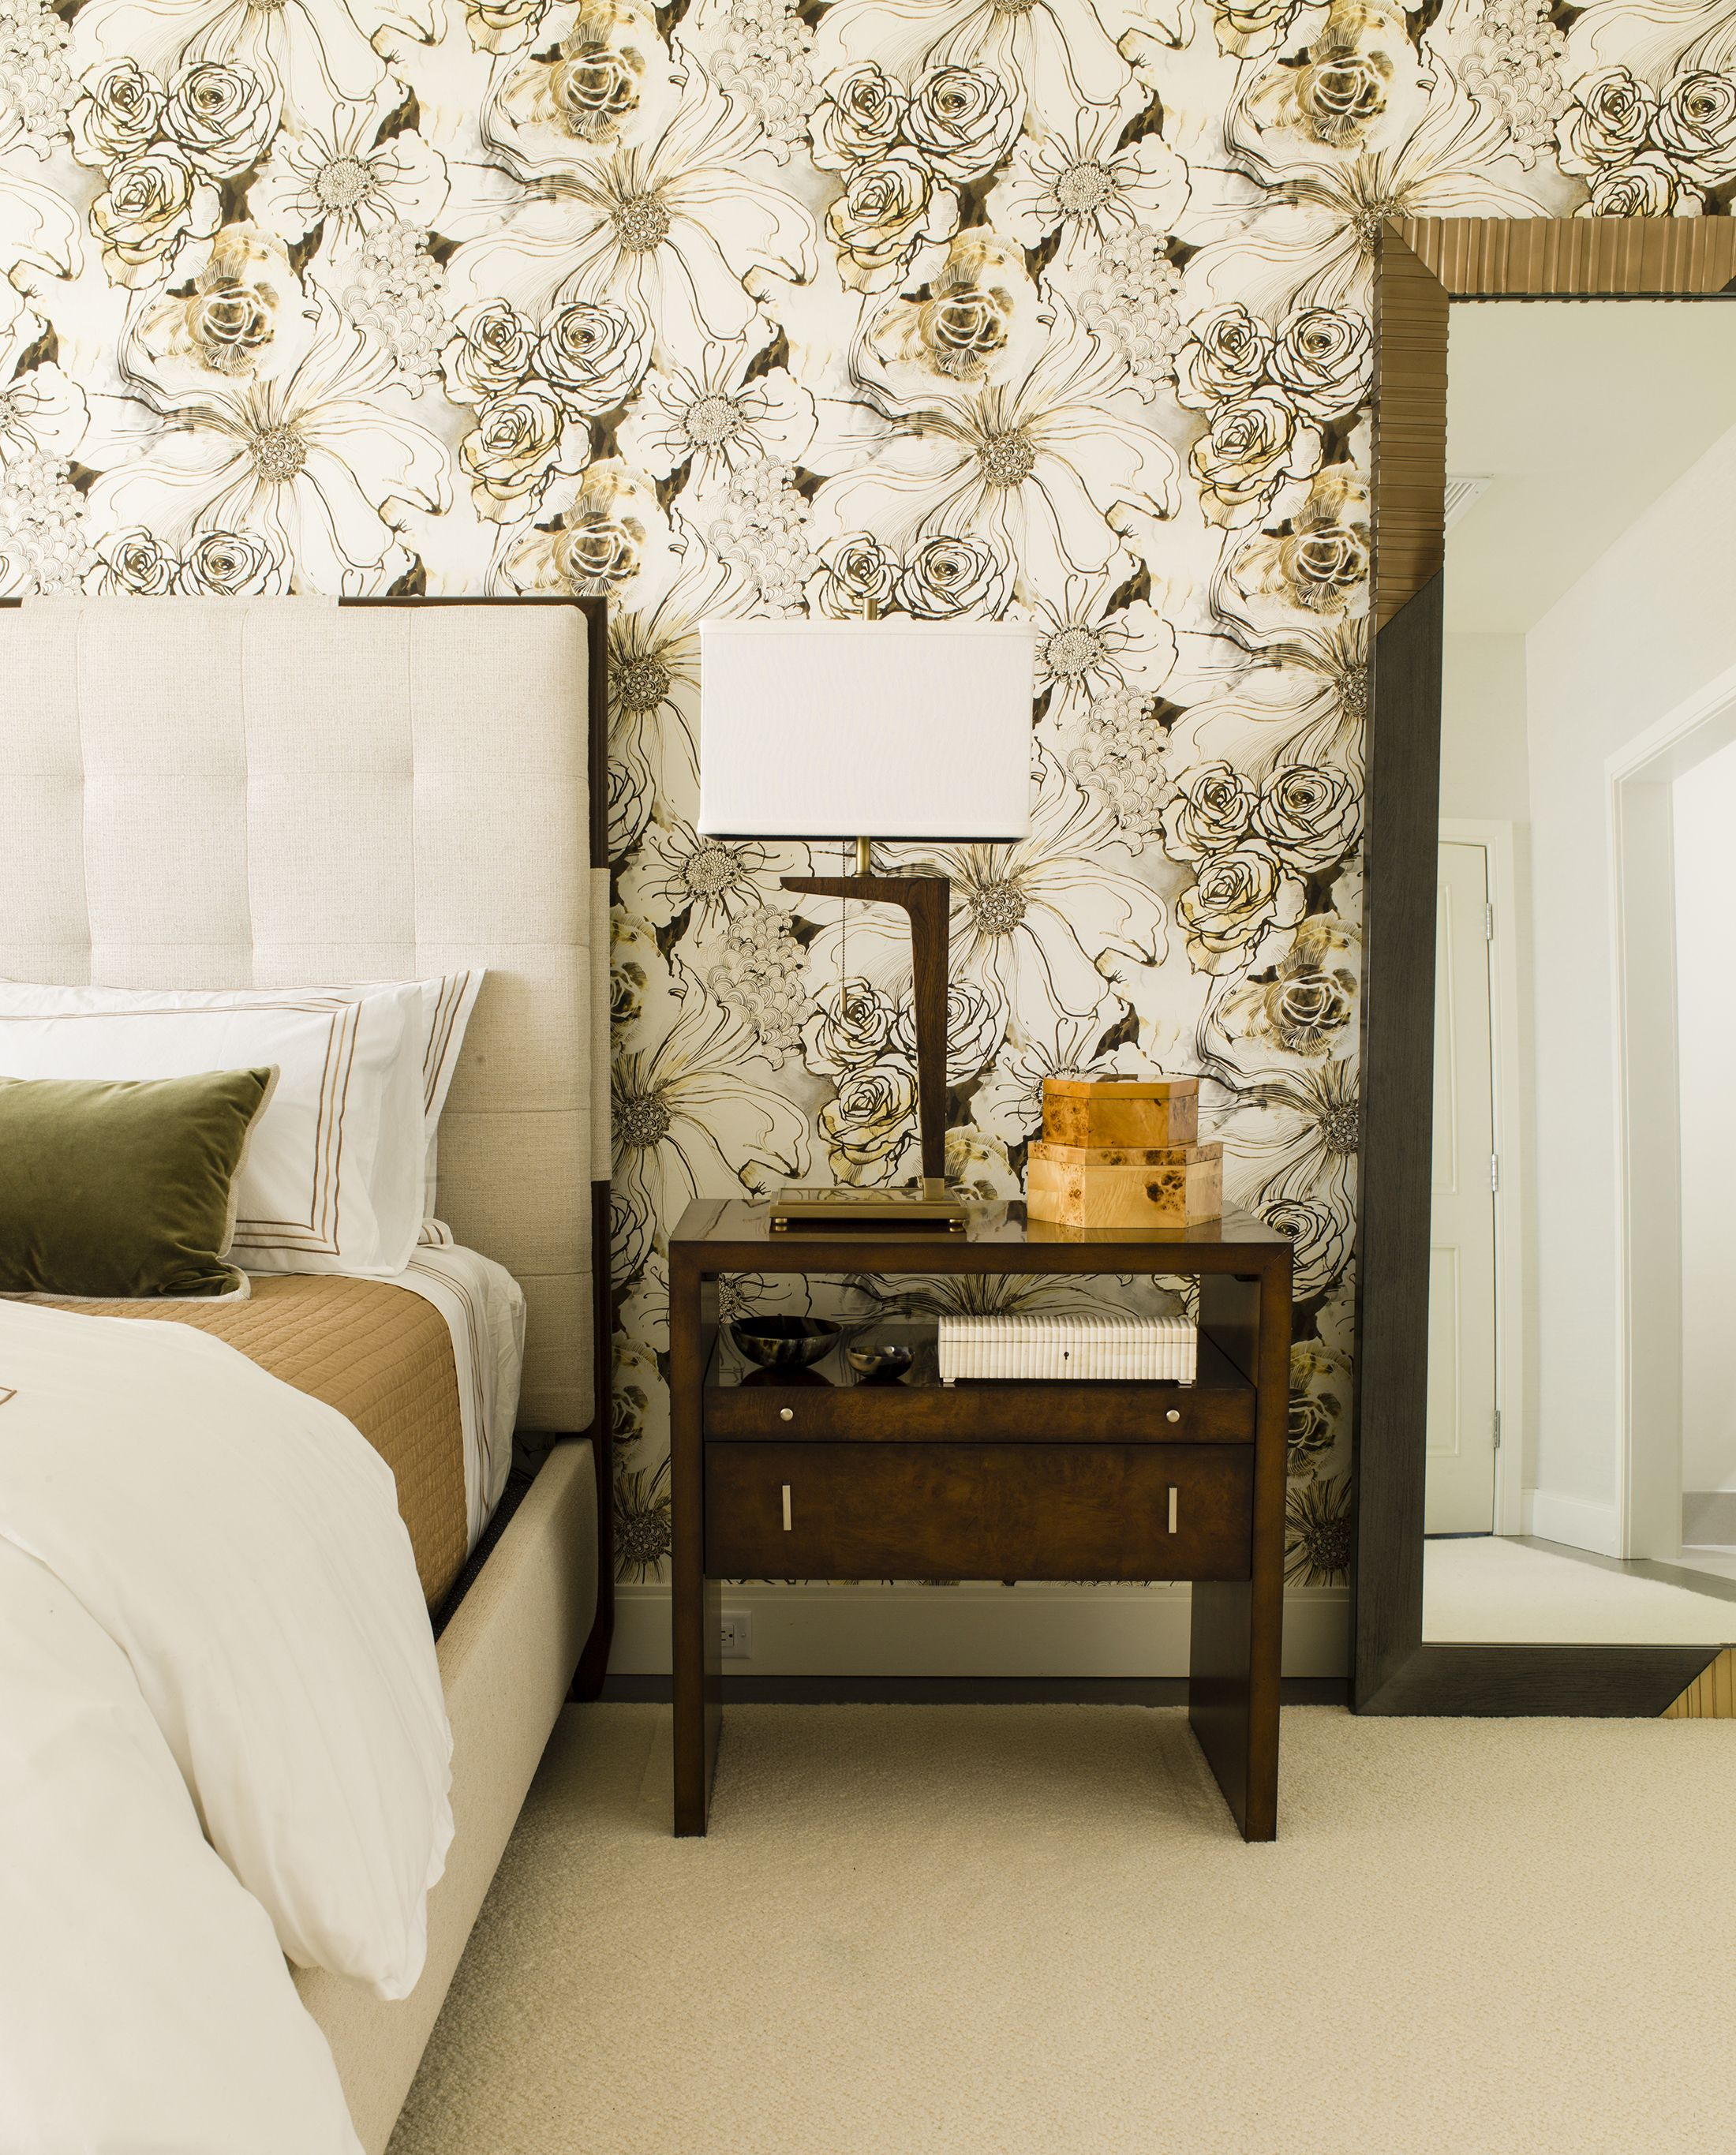 34 Bedroom Wallpaper Ideas Statement Wallpapers We Love